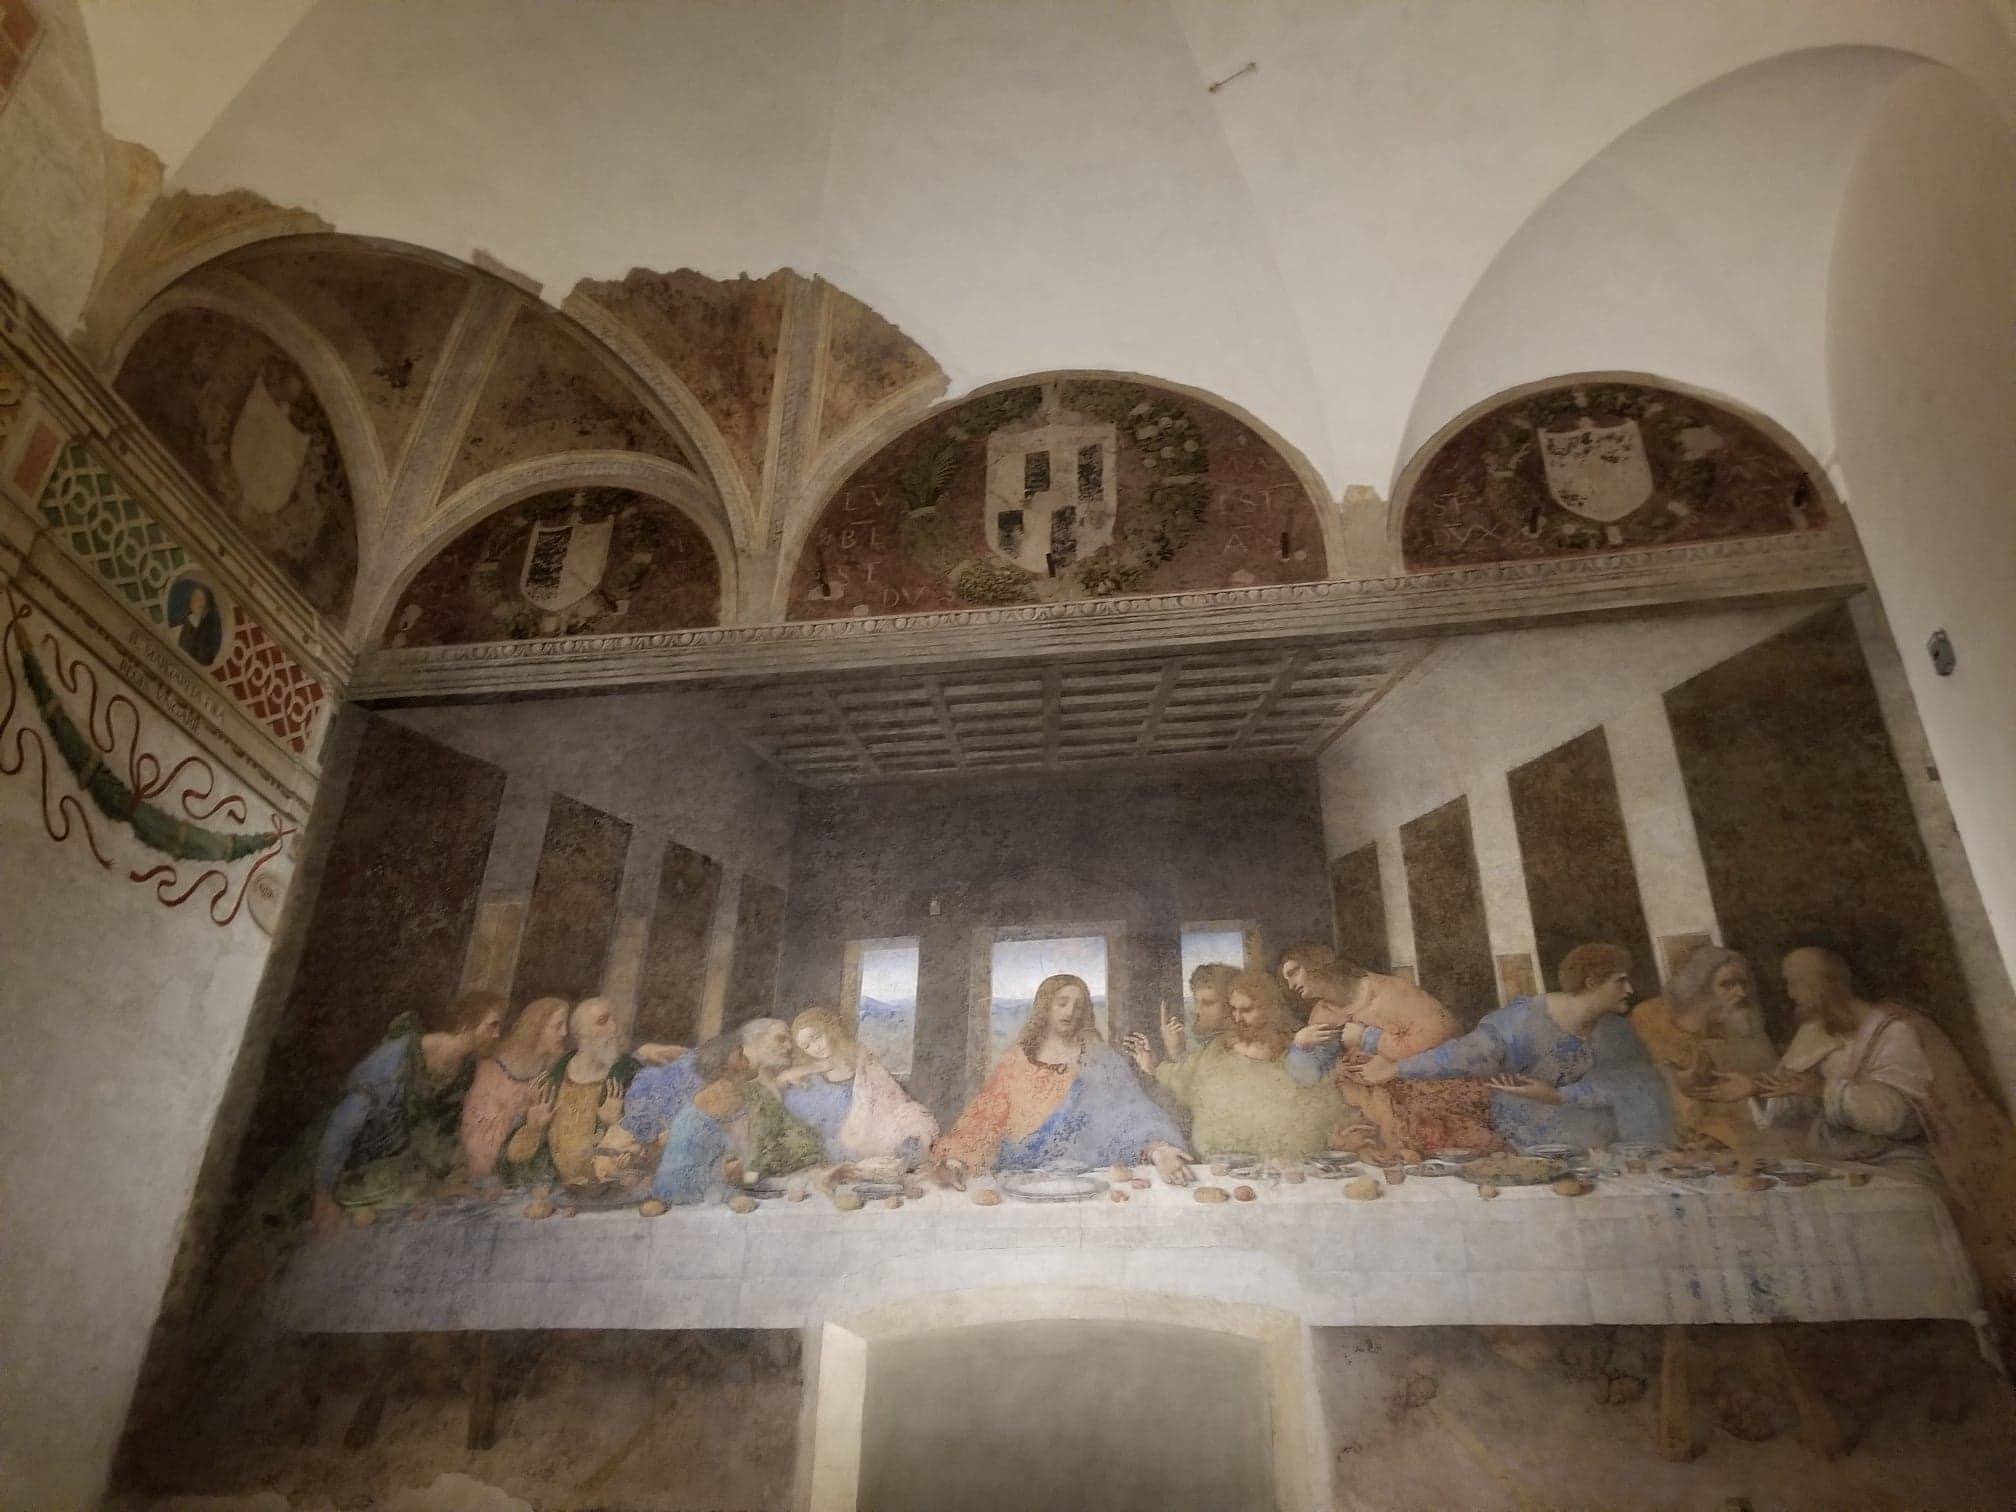 Front row view with the Iconic Last Supper